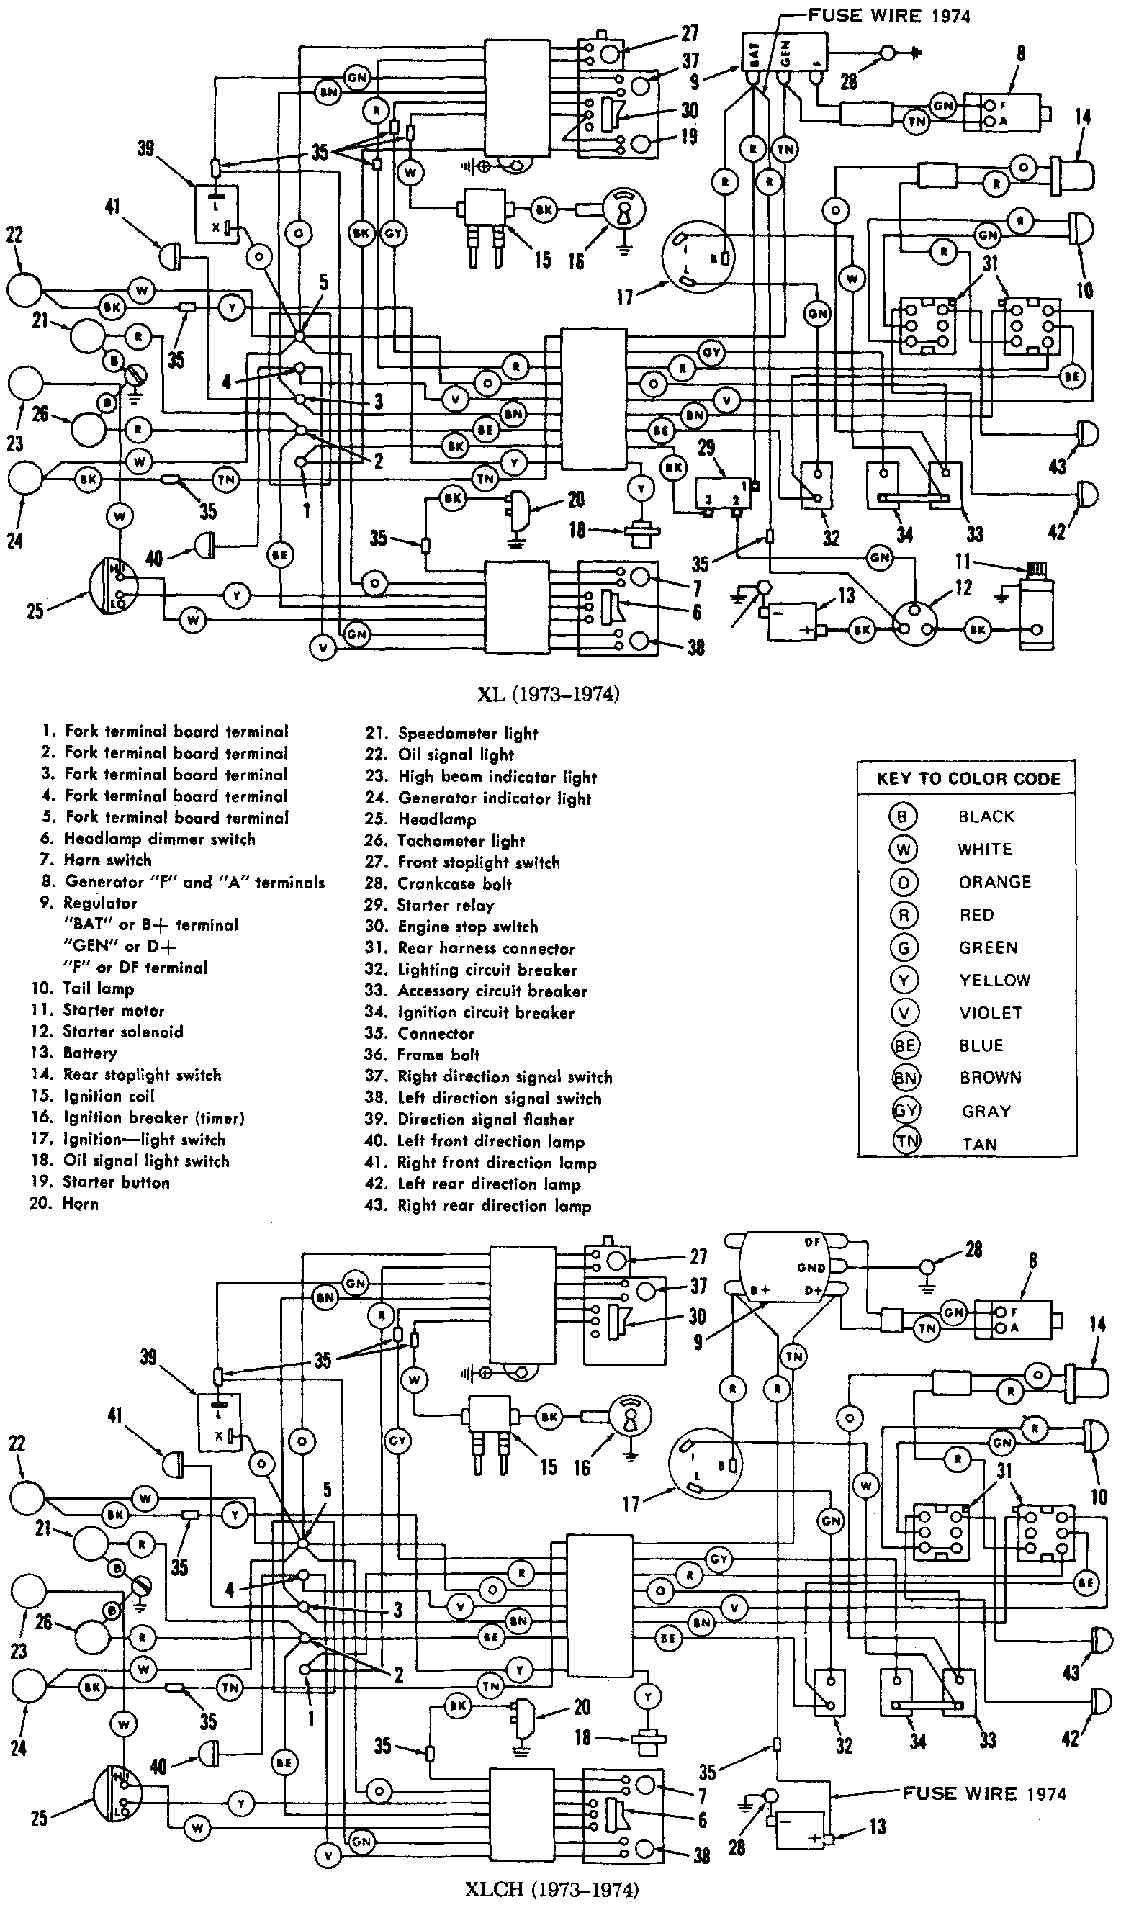 HARLEY DAVIDSON - Motorcycles Manual PDF, Wiring Diagram & Fault CodesMotorcycle Manuals News